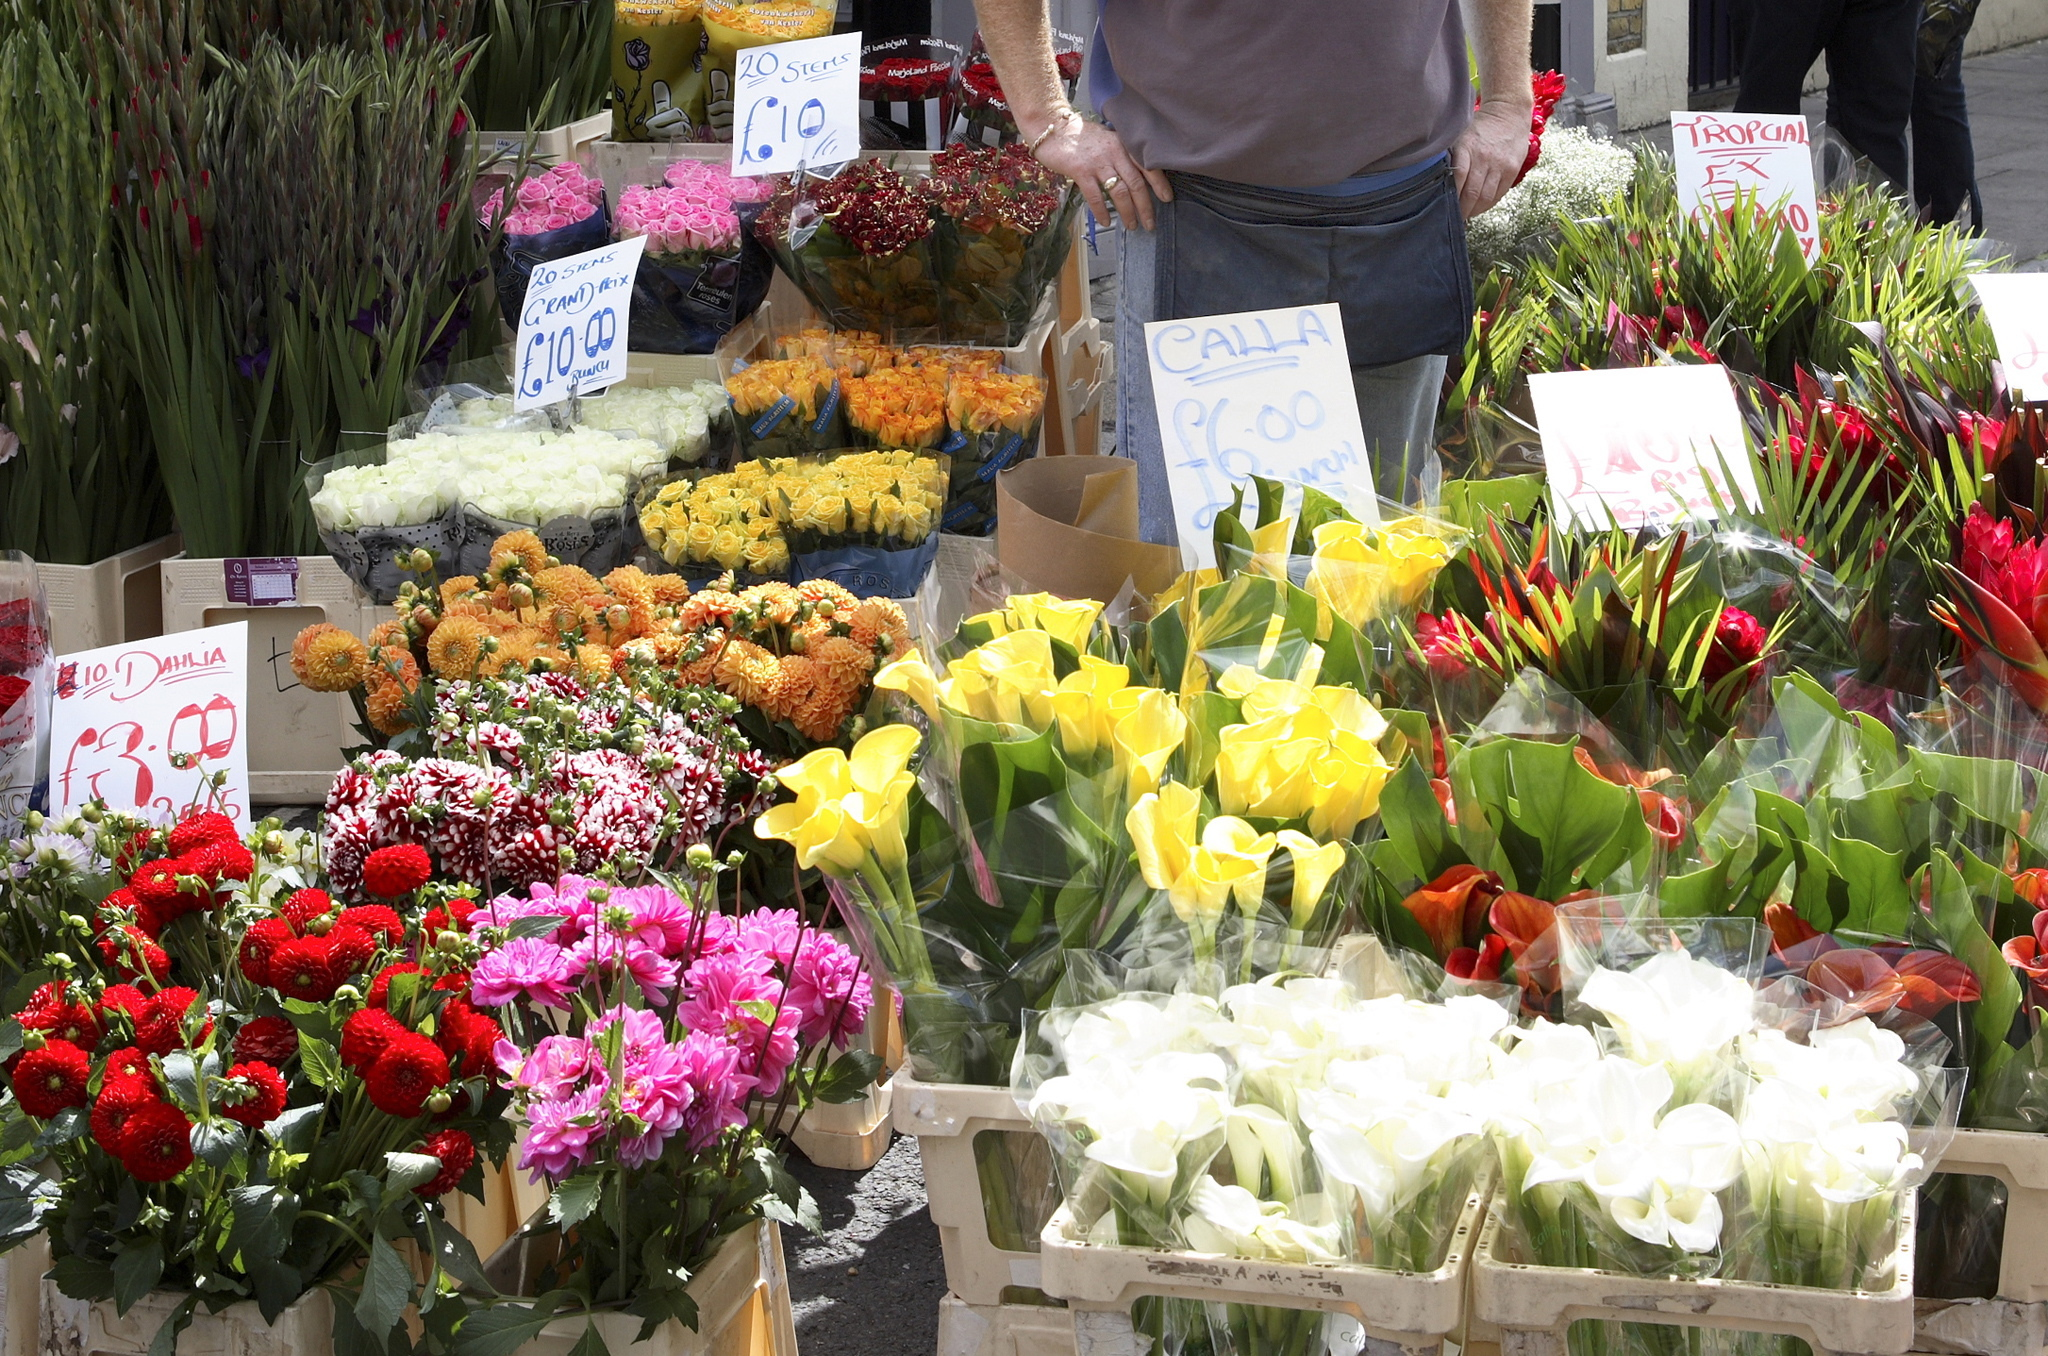 Get up early to see Columbia Road in full bloom